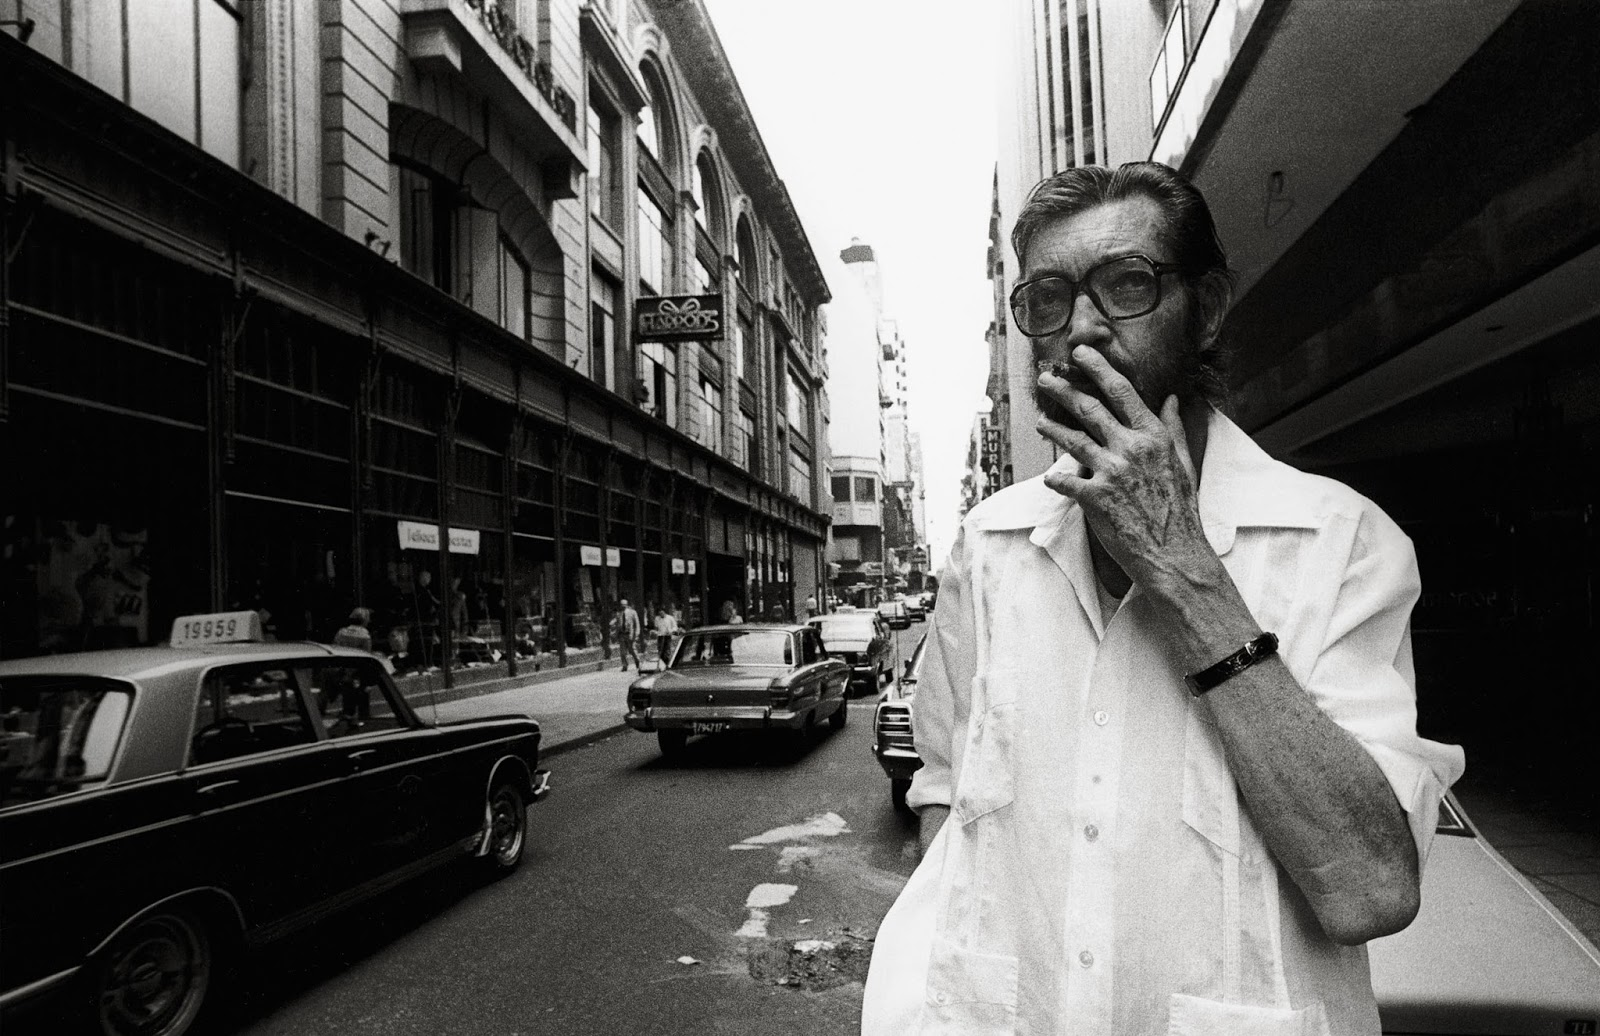 Cortazar: 1000+ Images About People On Pinterest